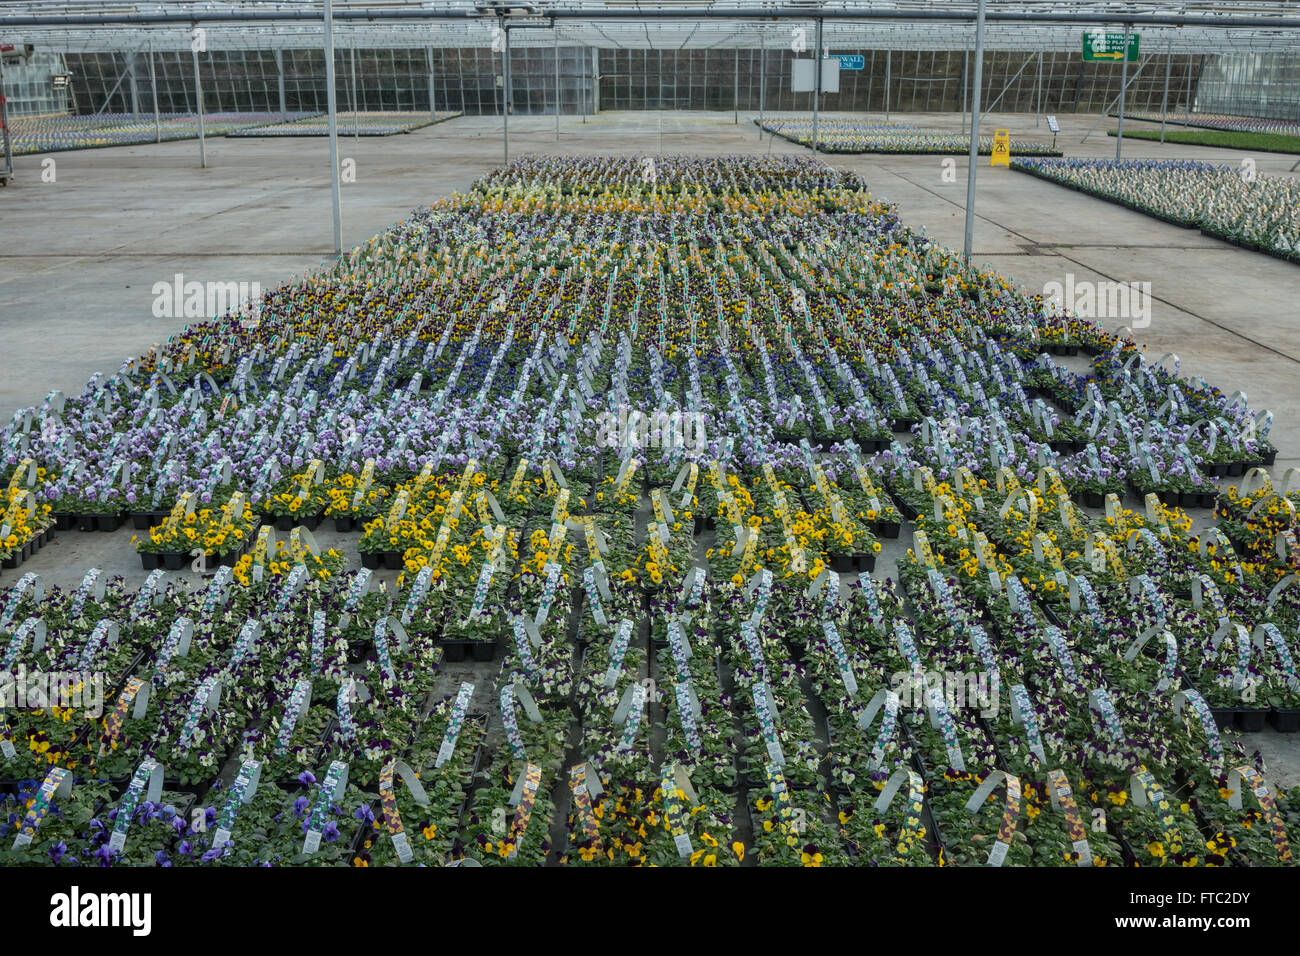 flower nursery, commercial greenhouse, - Stock Image